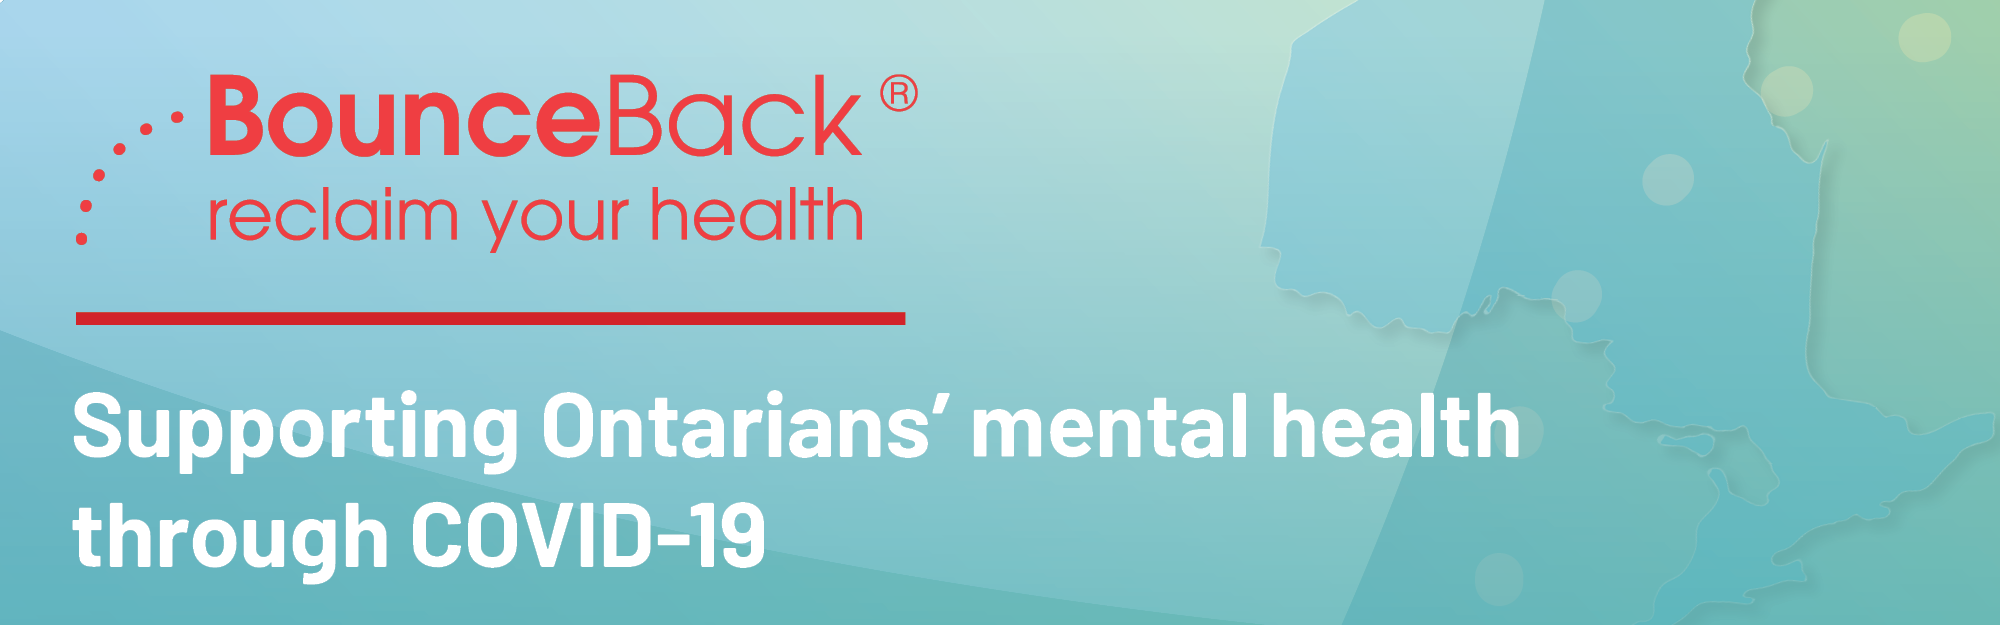 Mental Health Supports Available to All Ontarians: CMHA BounceBack